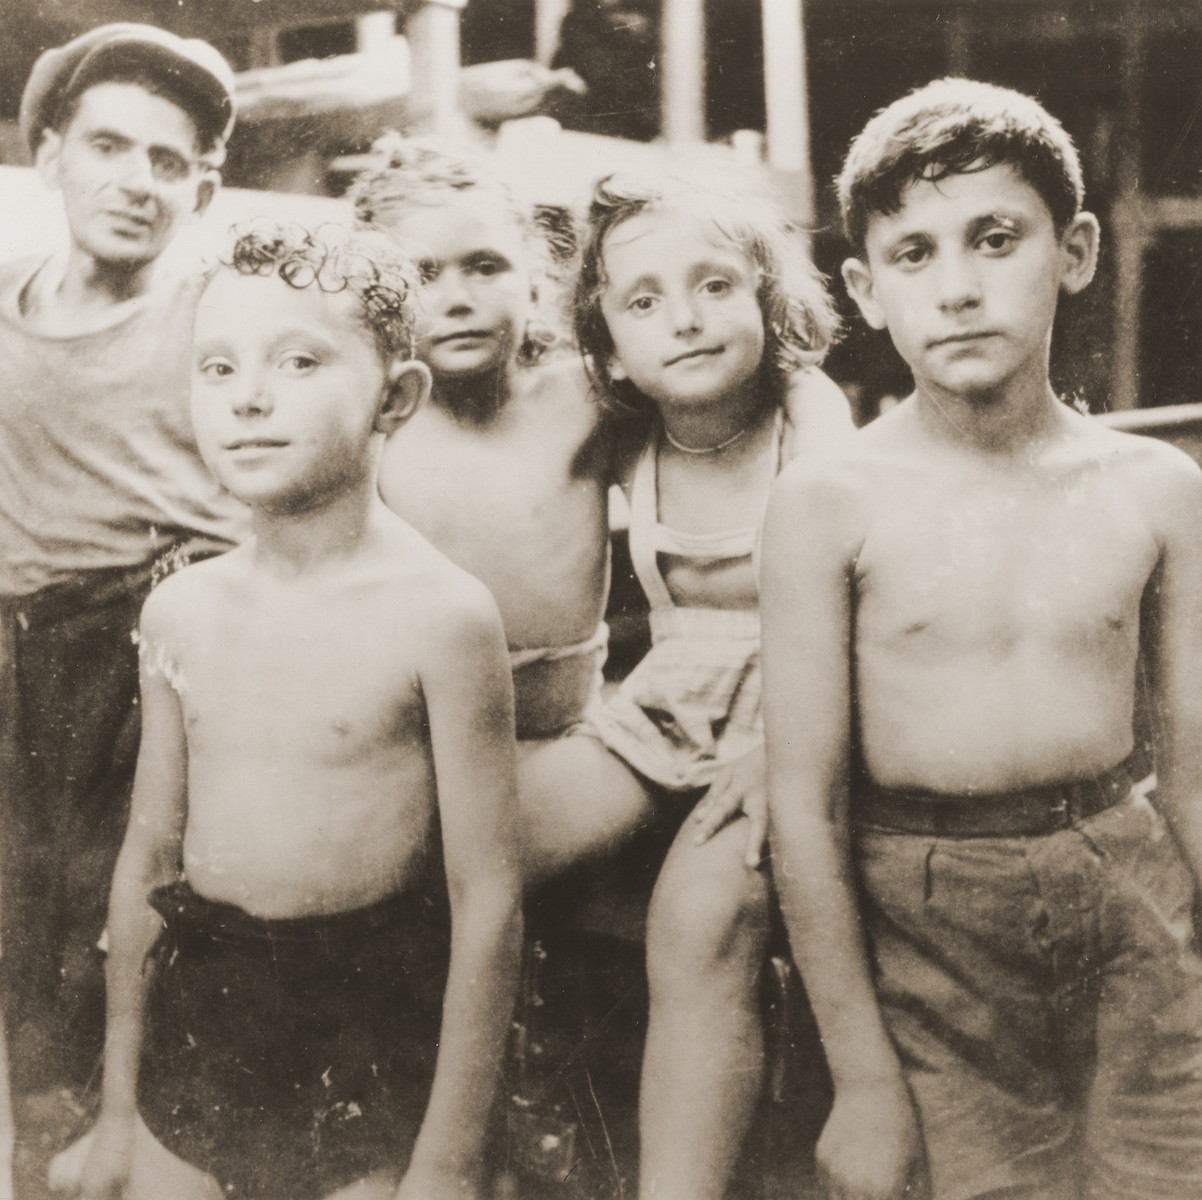 Group portrait of Jewish DP children on the deck of the Mala immigrant ship while en route to the new State of Israel.